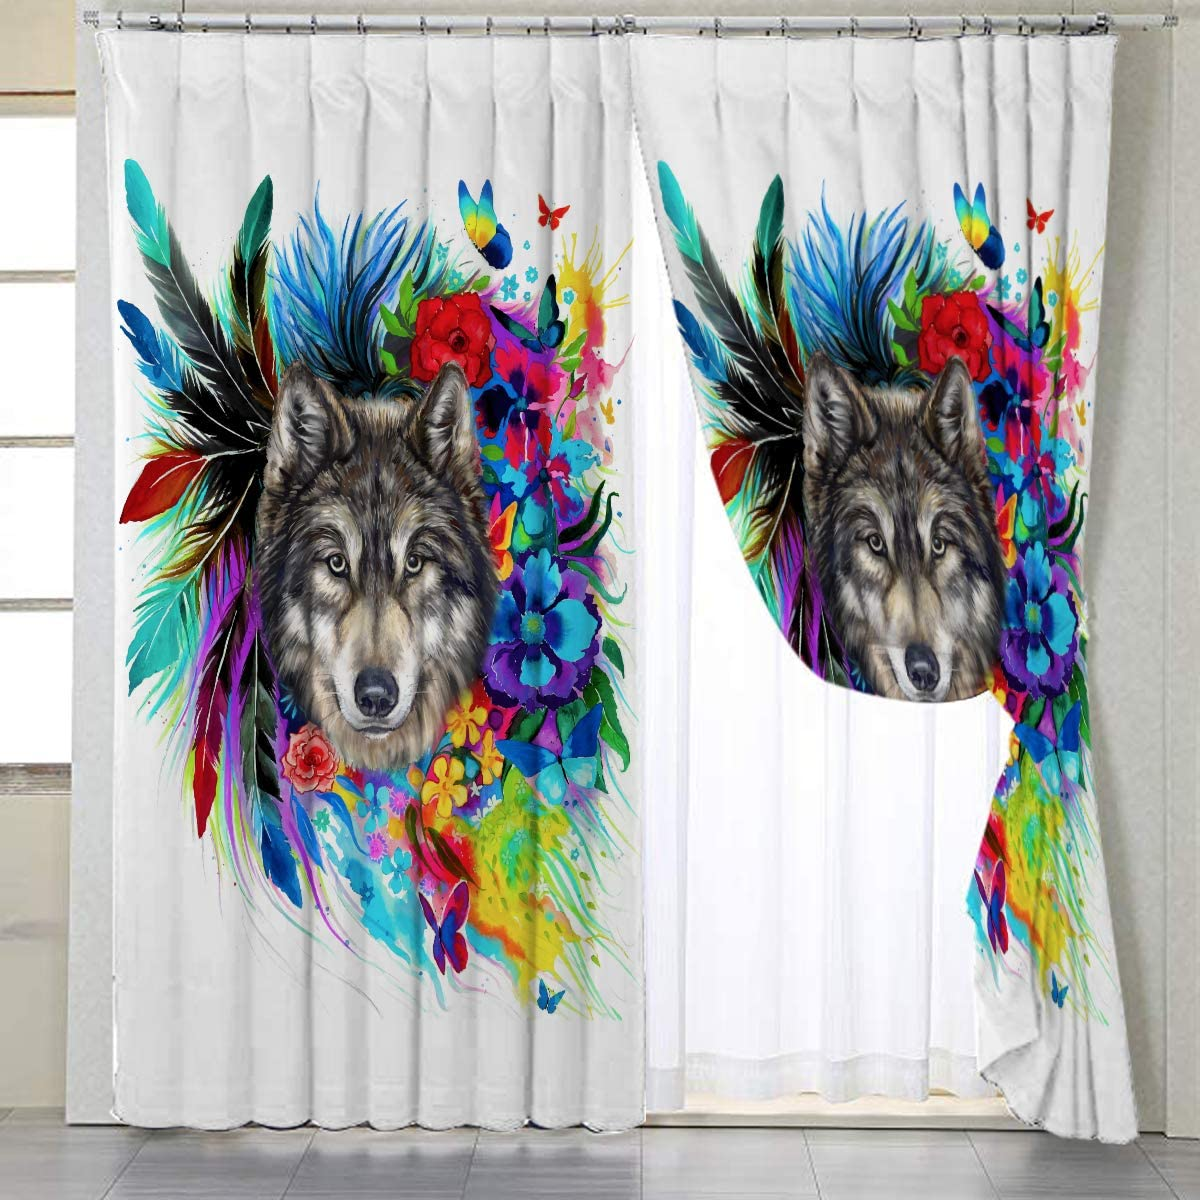 BlessLiving Boho Wolf Window Curtains Watercolor Wolf with Colorful Flowers Window Treatment Fluffy Living Room Curtains,42 W x 63 L Grommet